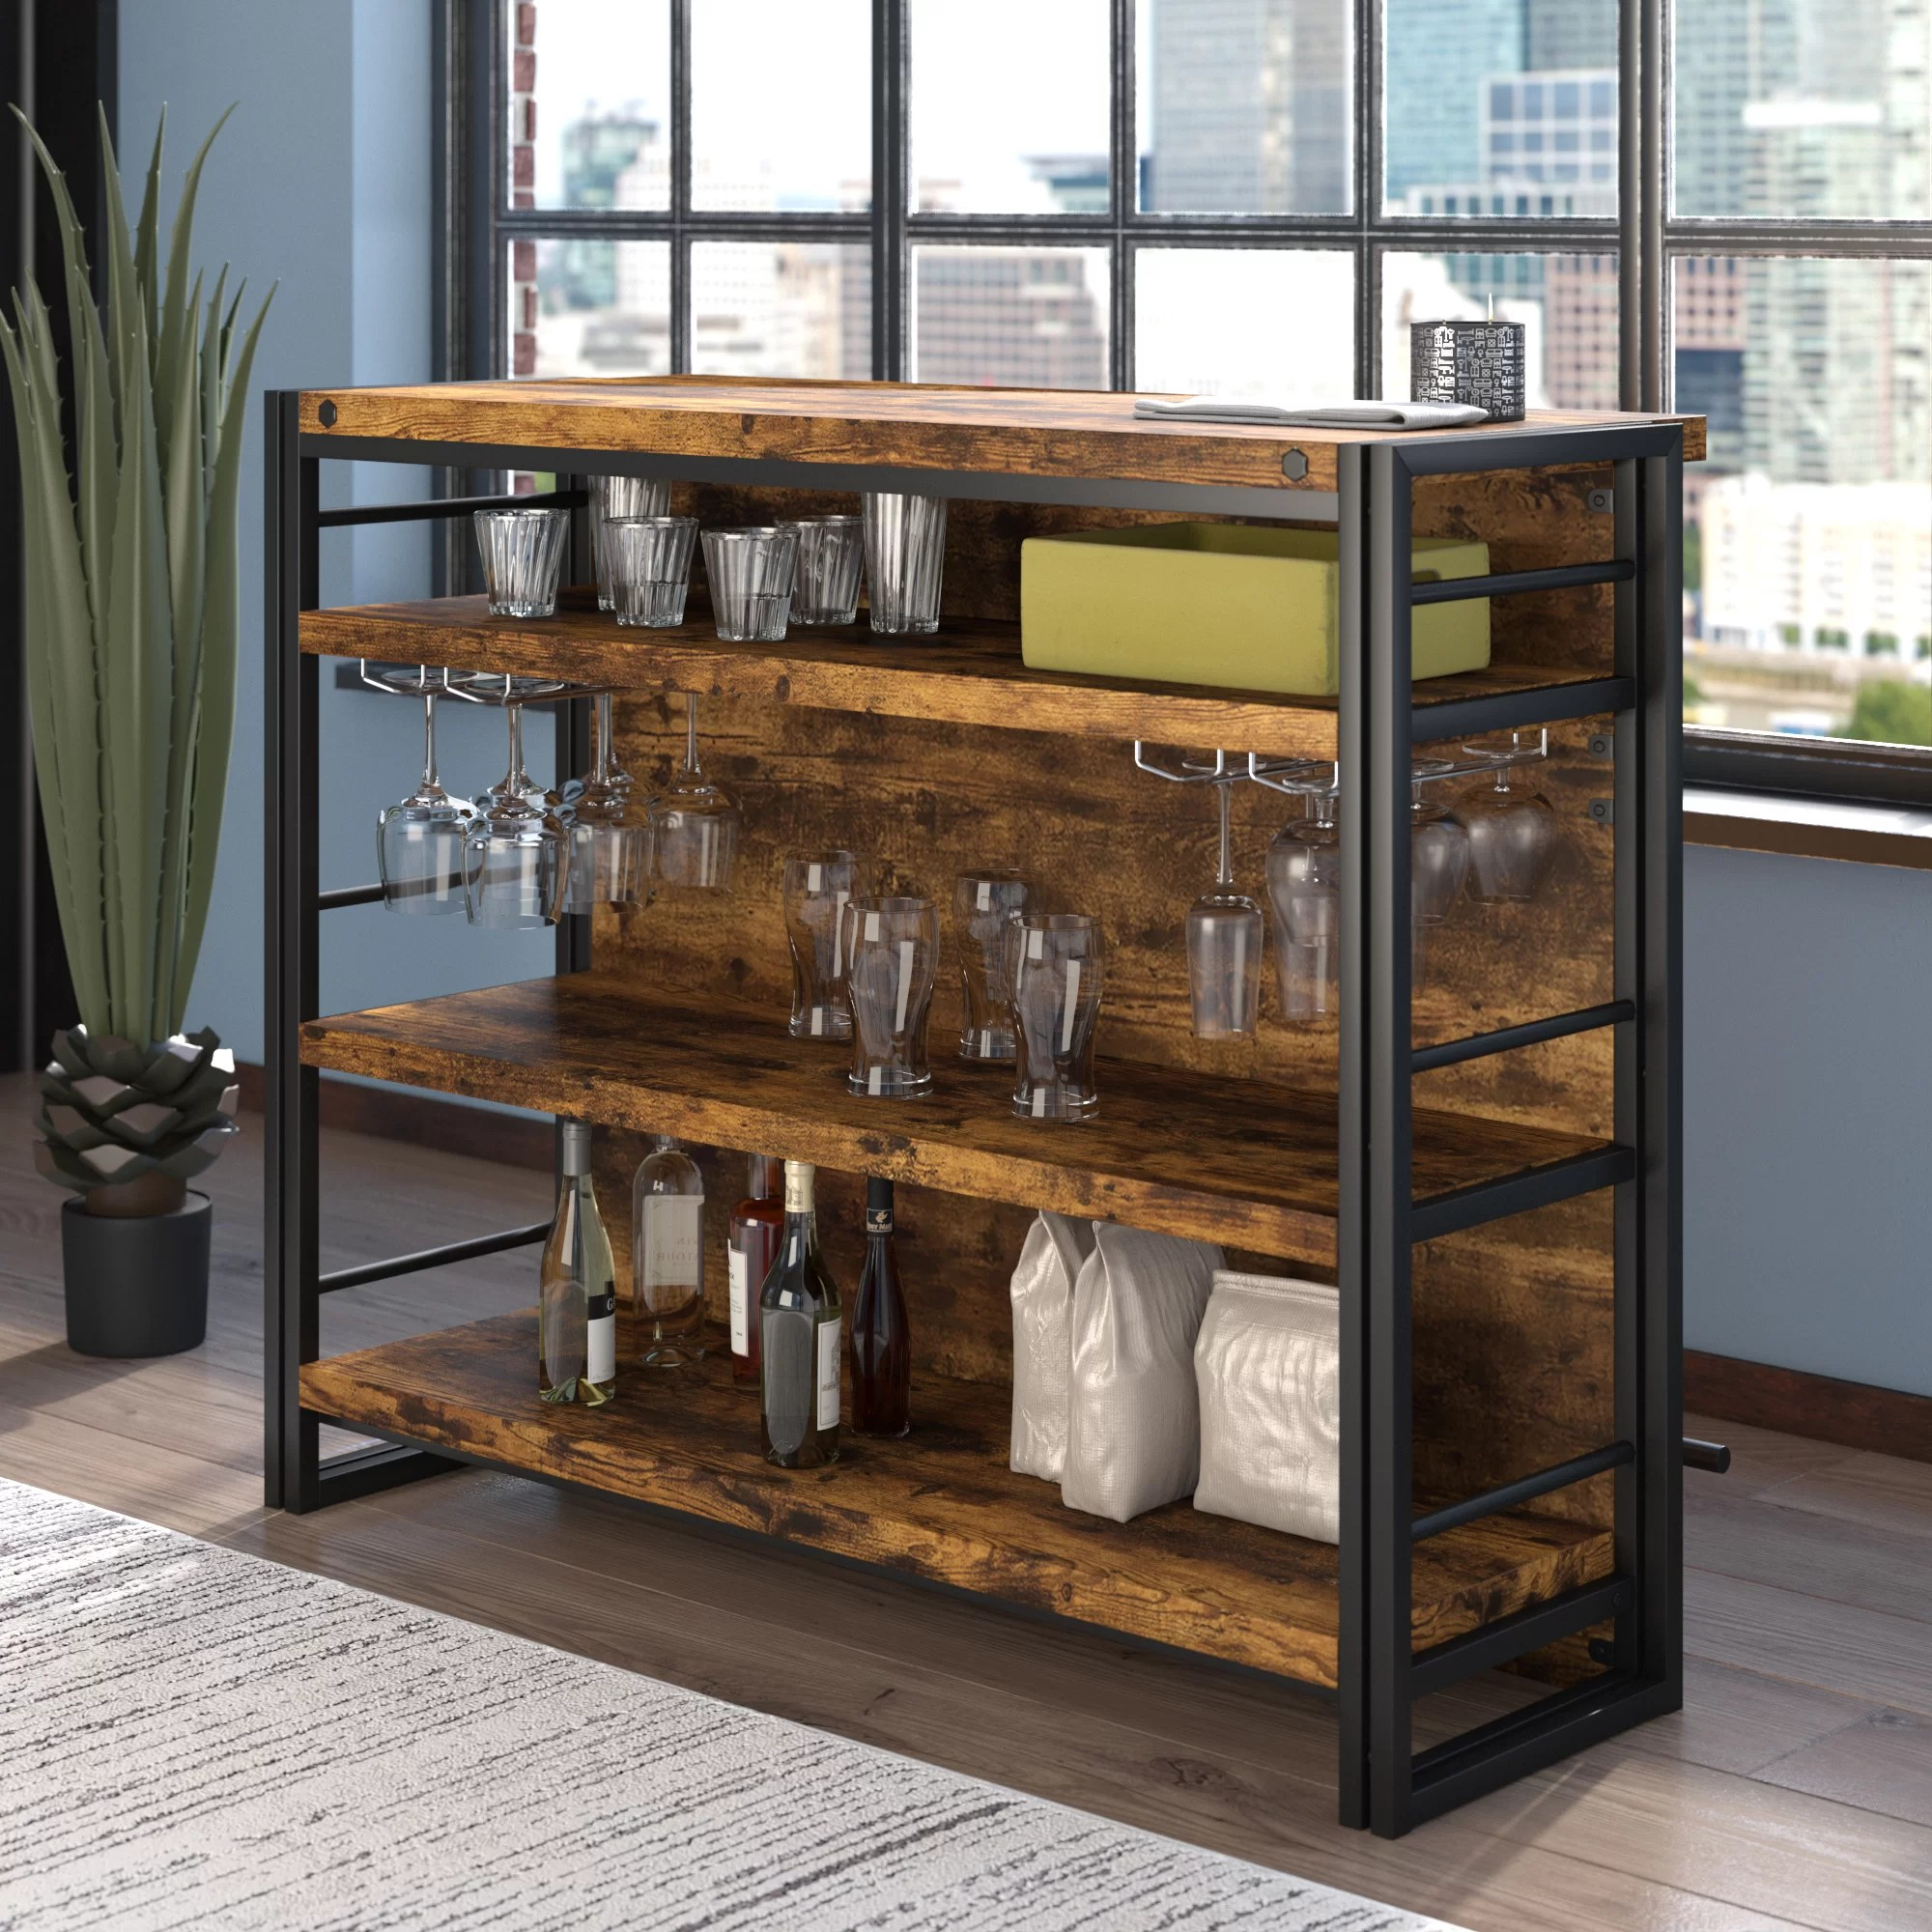 Barschrank Industrial Felicita Bar With Wine Storage